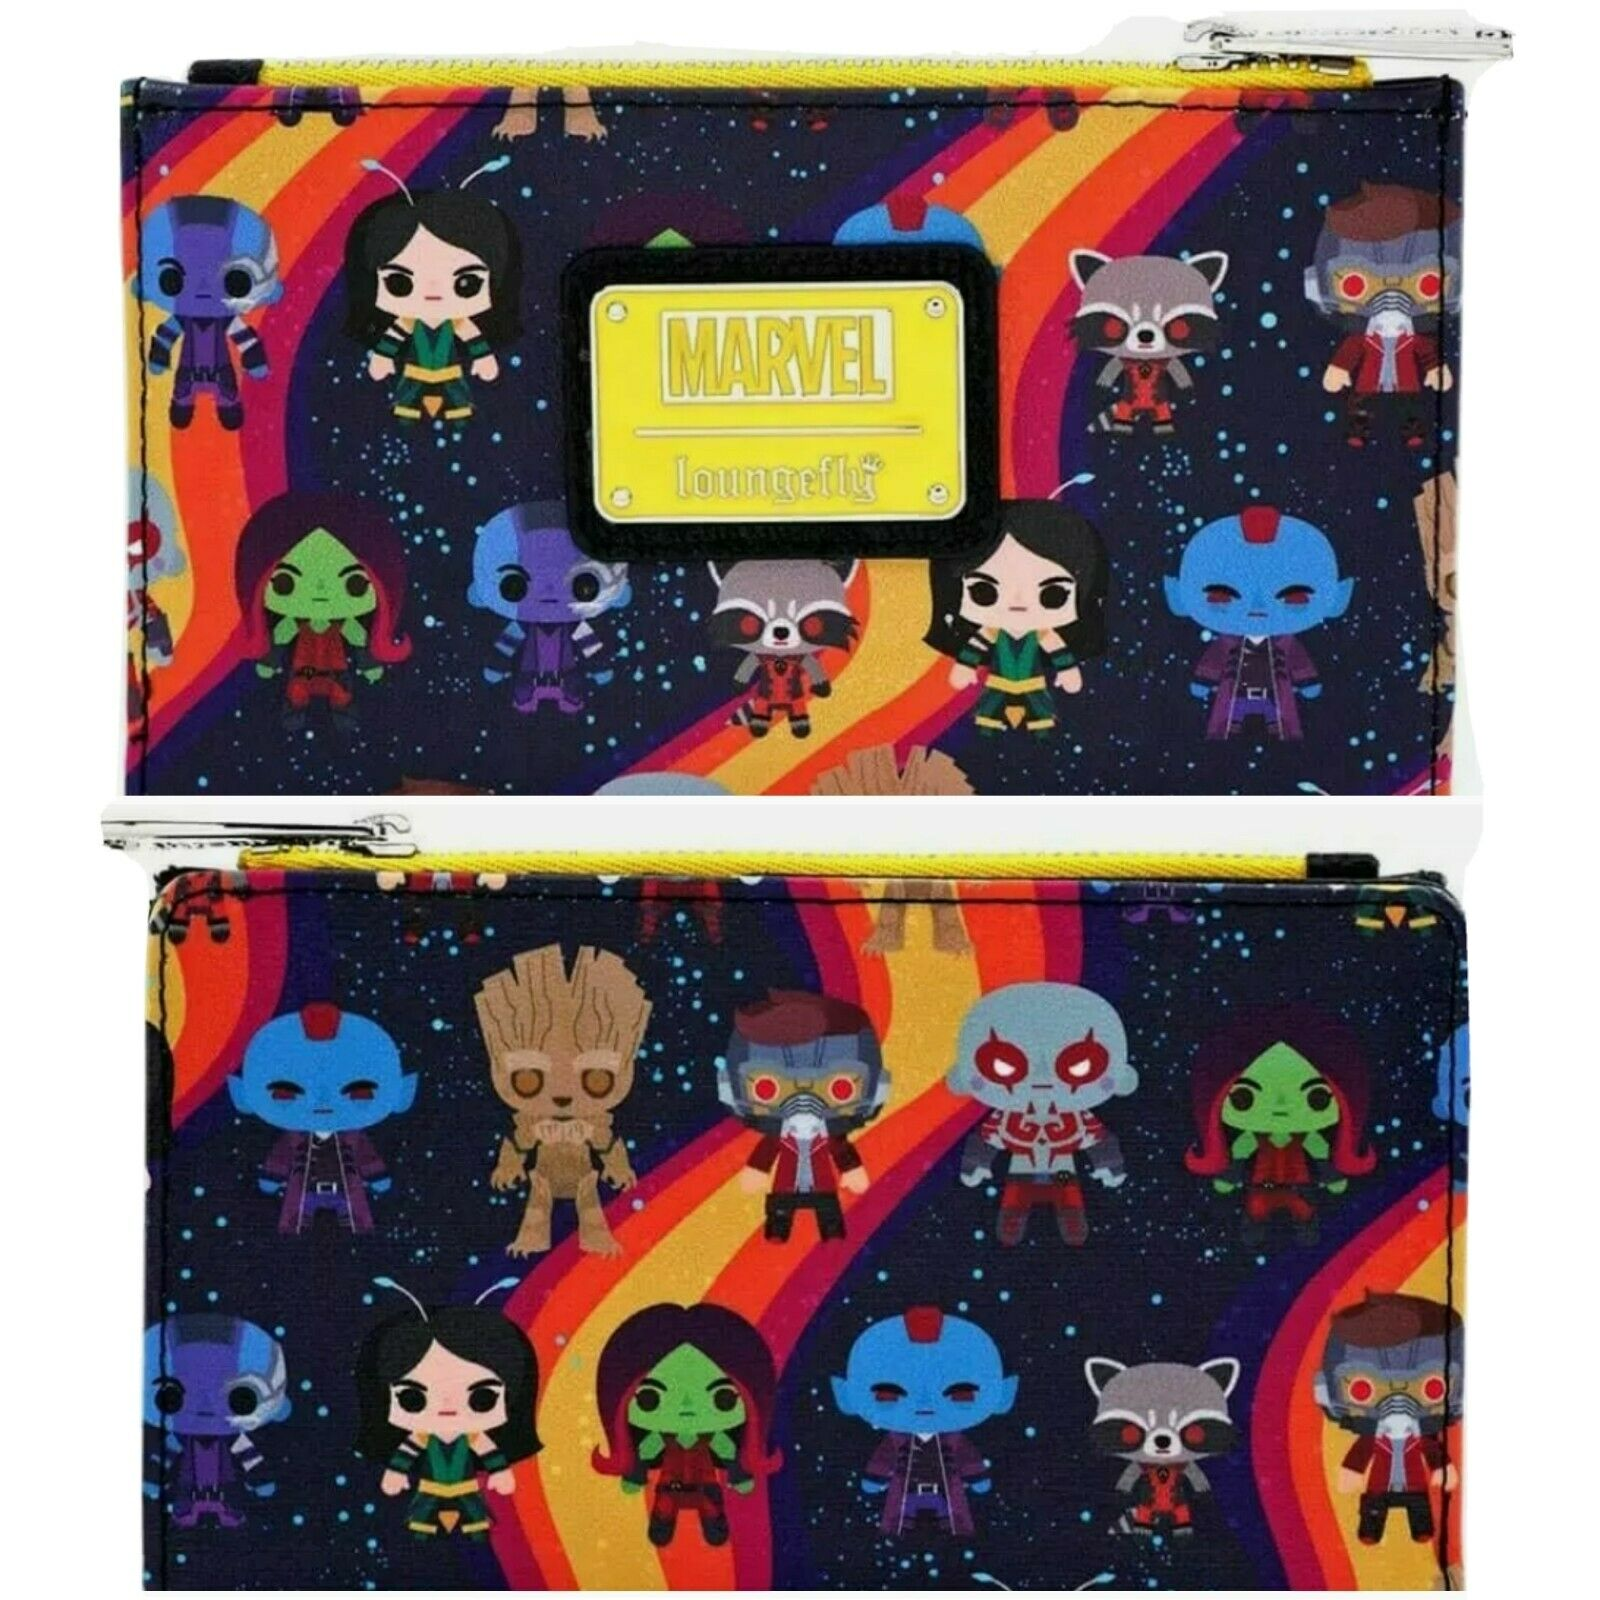 Loungefly x Marvel Guardians of the Galaxy Chibi AOP Purse Wallet